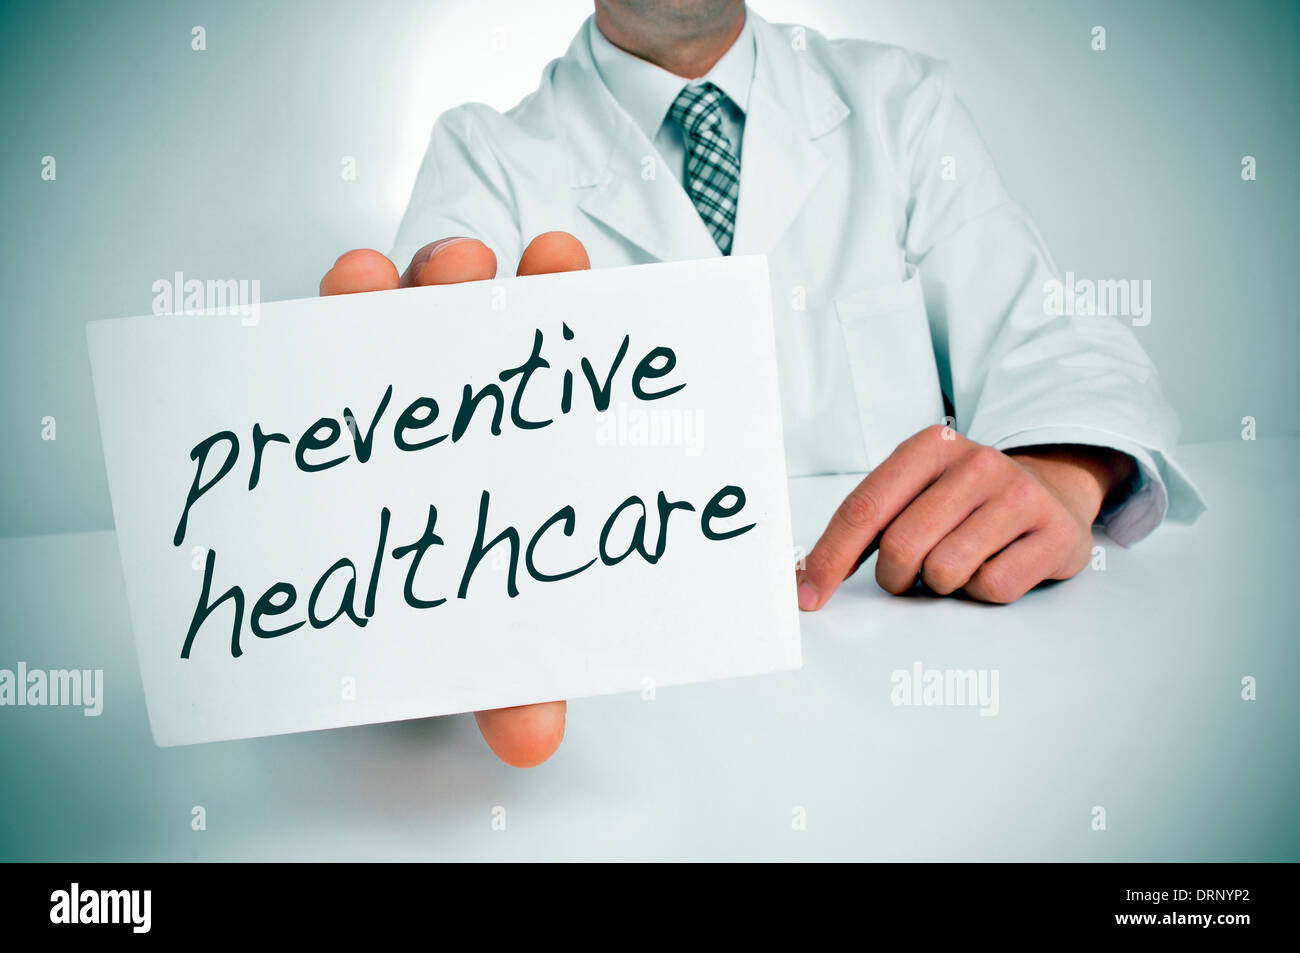 a man wearing a white coat showing a signboard with the text preventive healthcare written in it - Stock Image